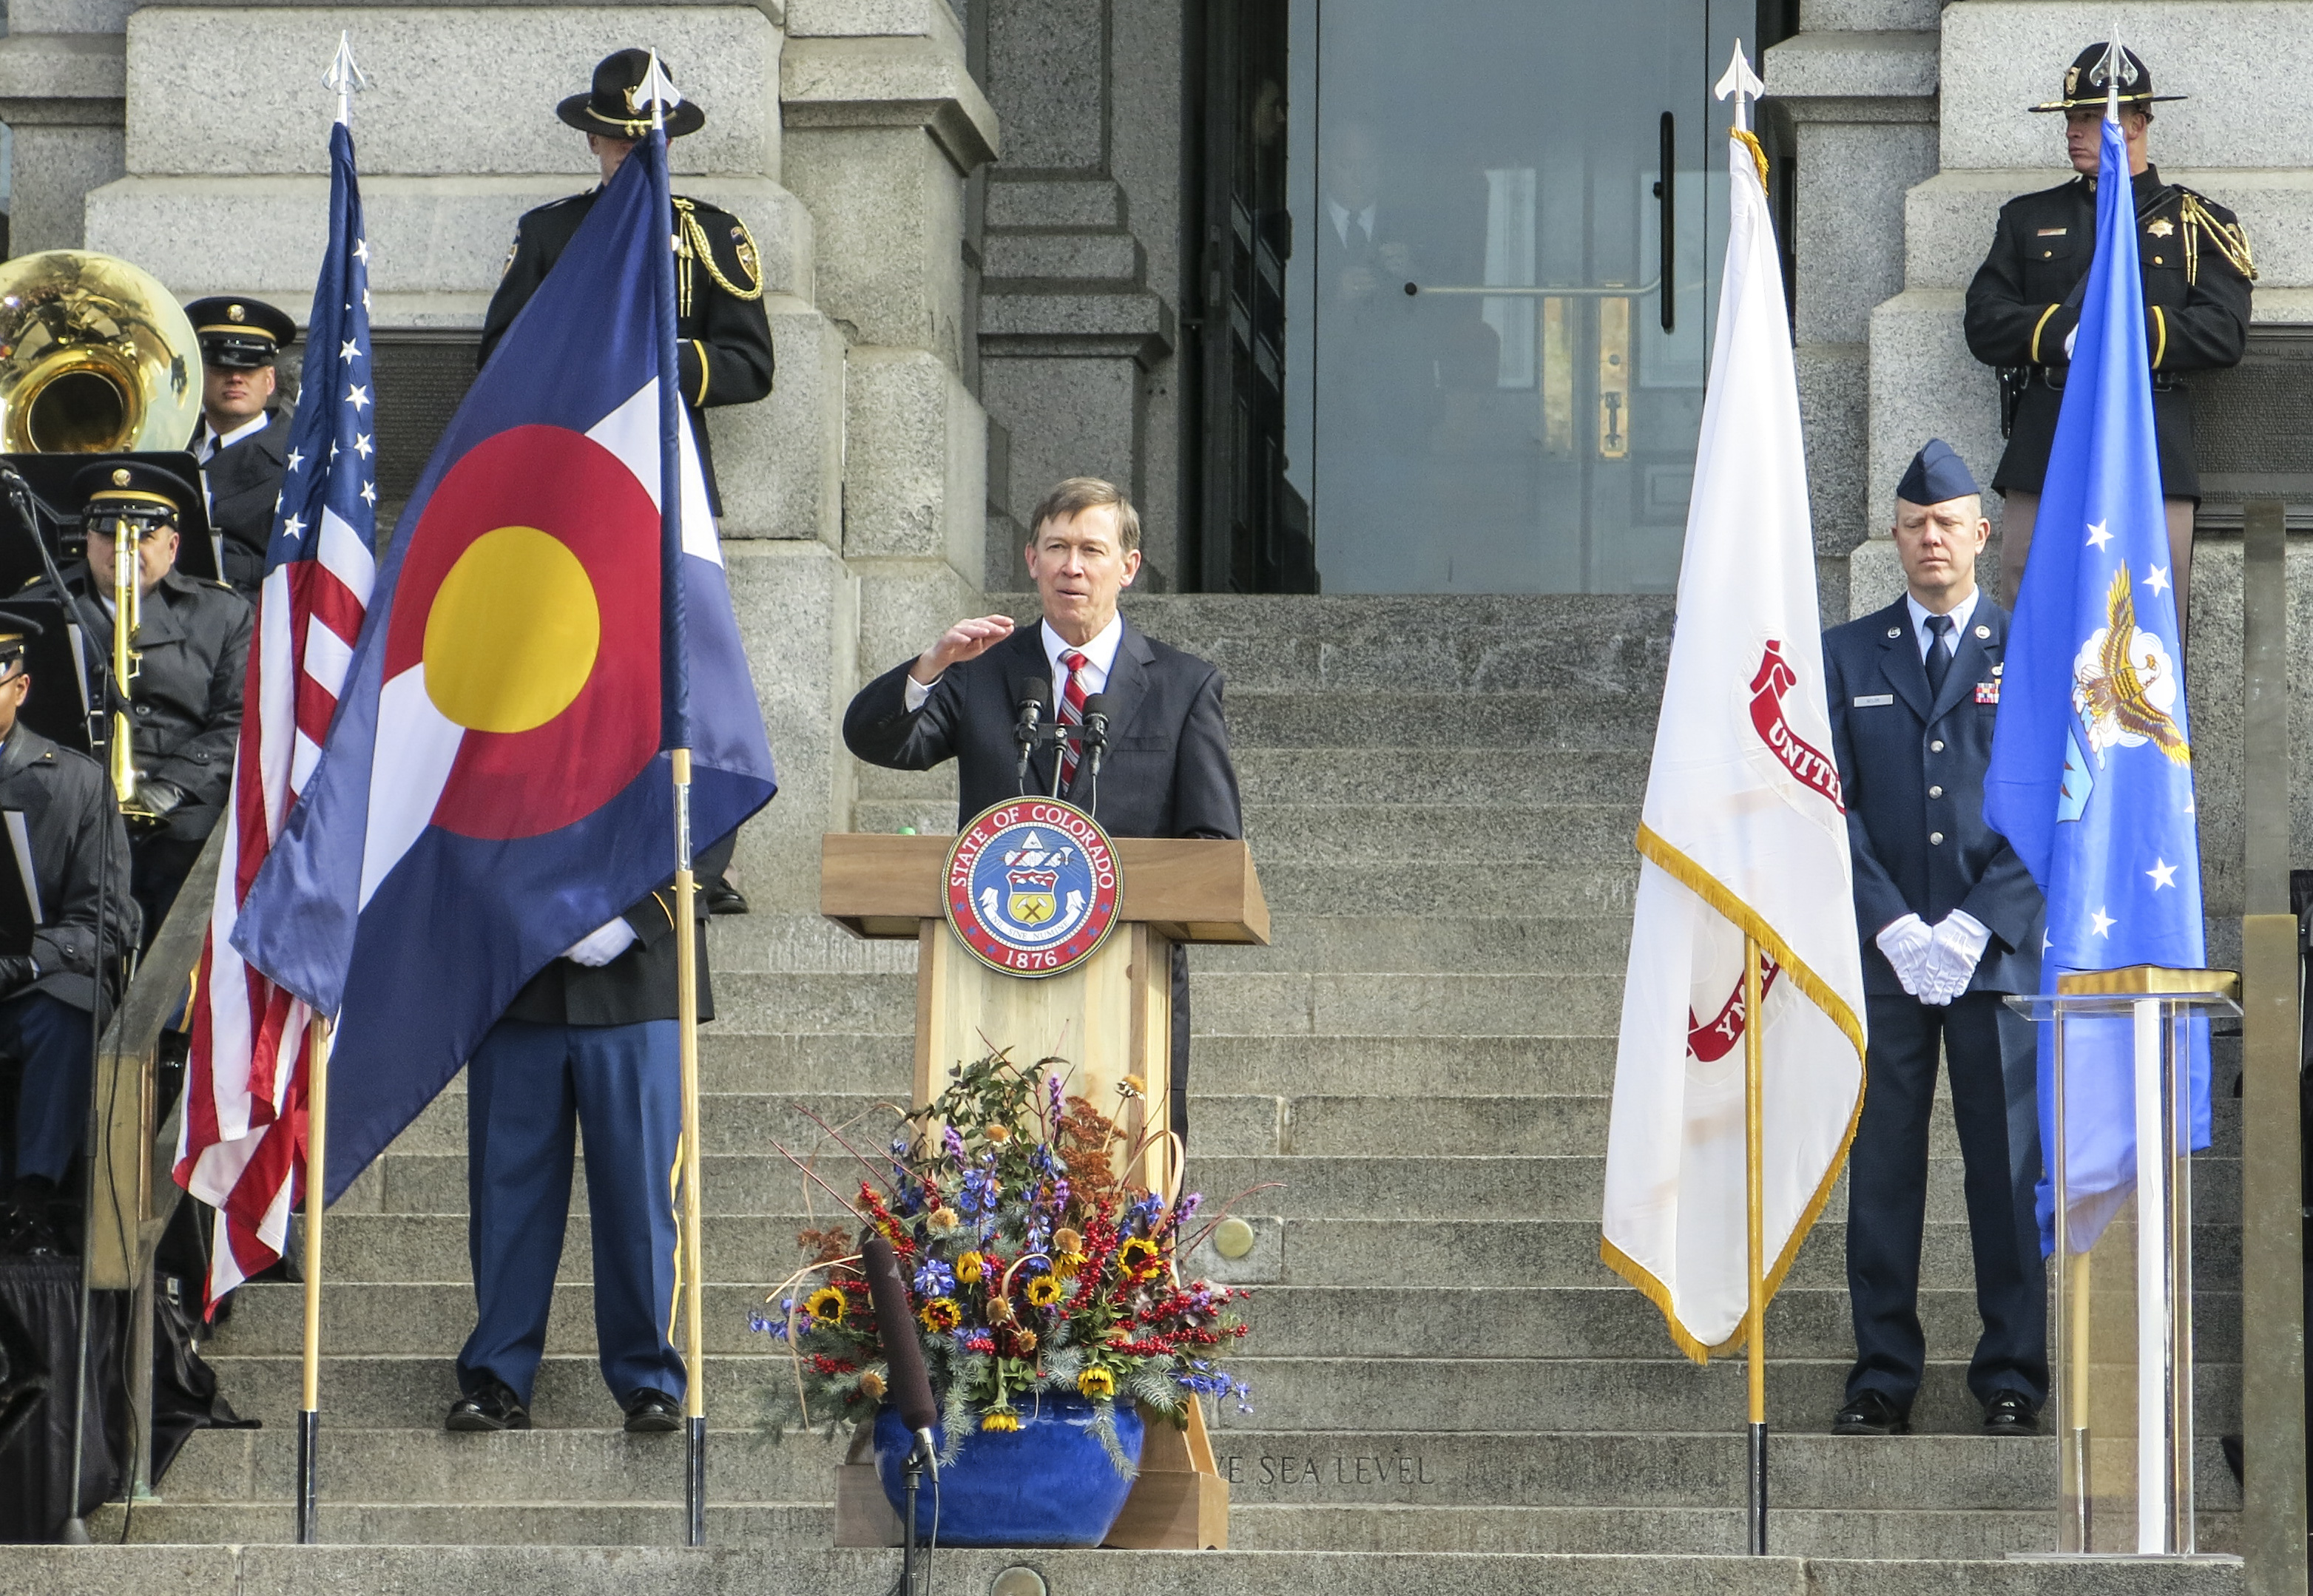 Photo: Gov. John Hickenlooper gives inaugural address